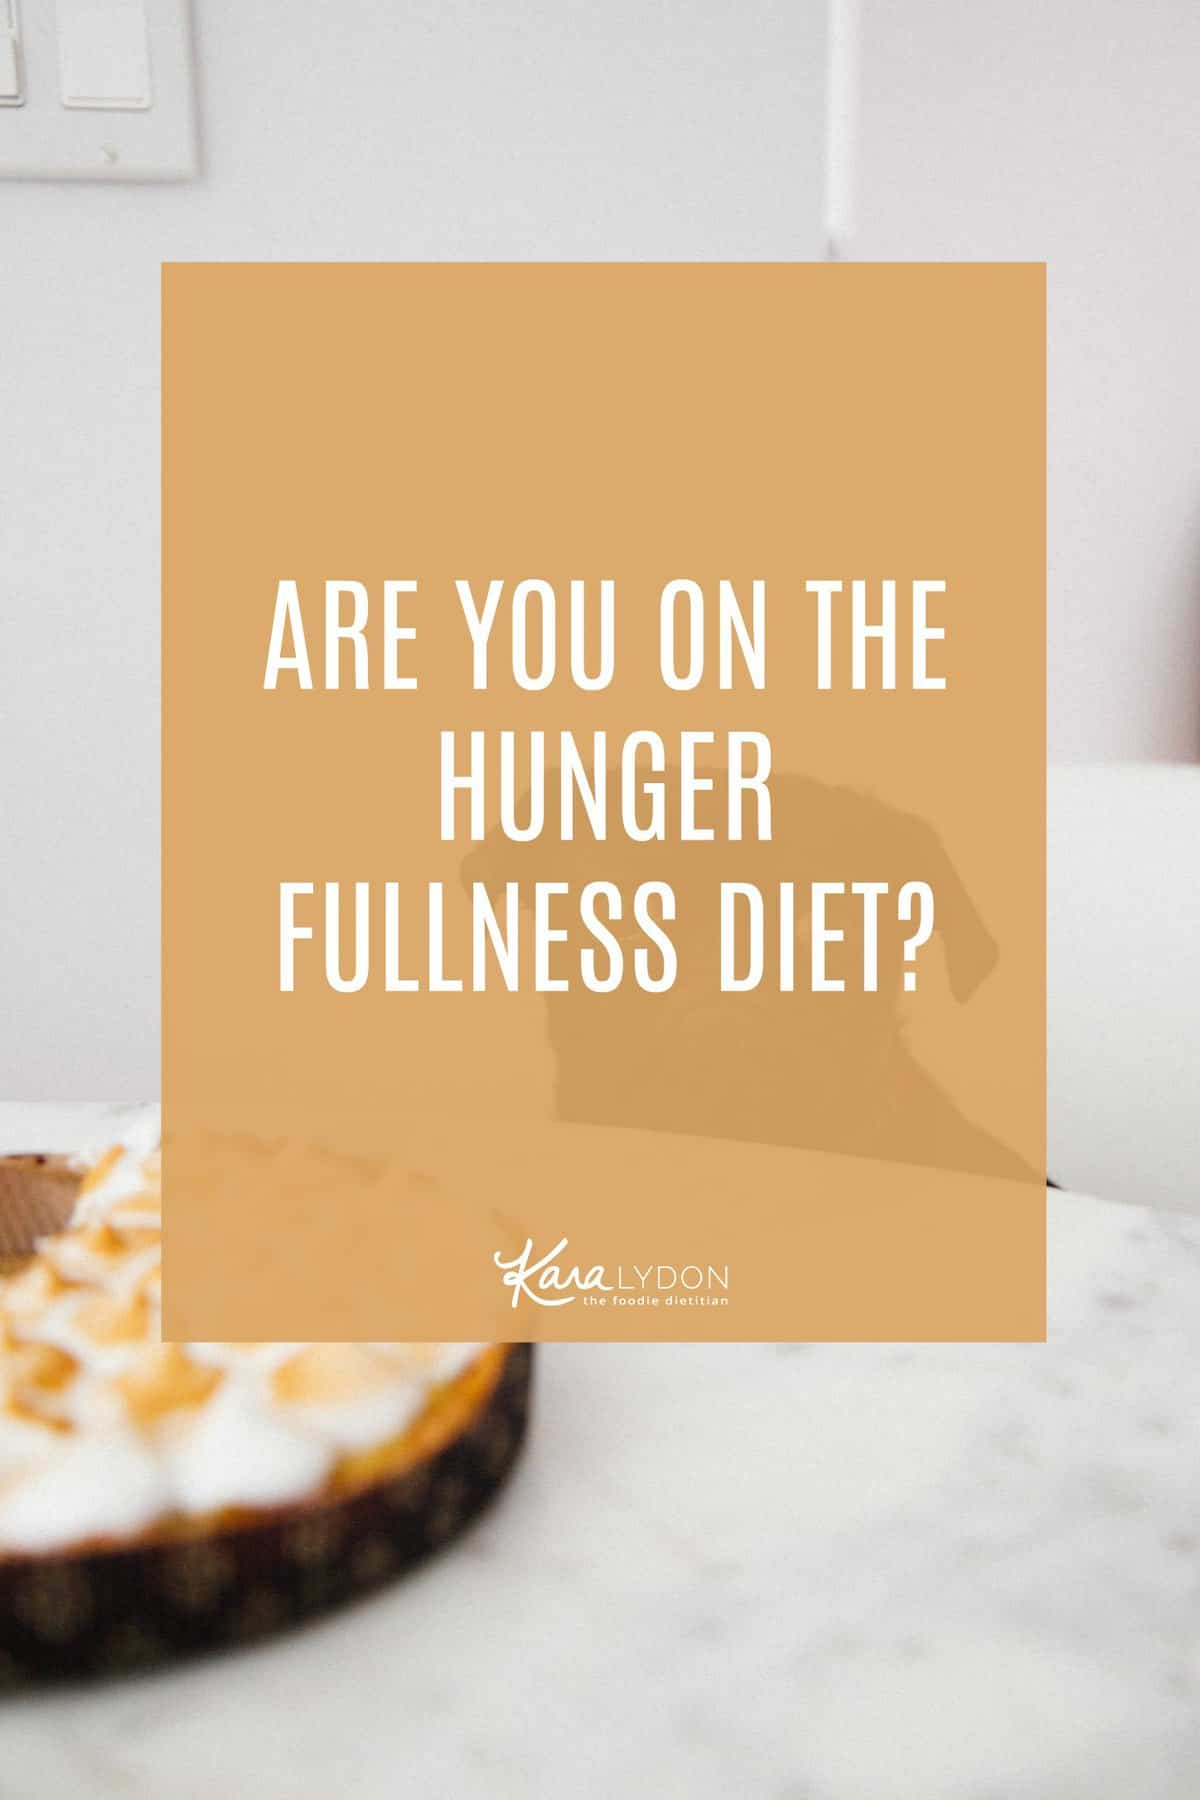 ARE-YOU-on-the-hunger-fullness-diet-pin.jpg